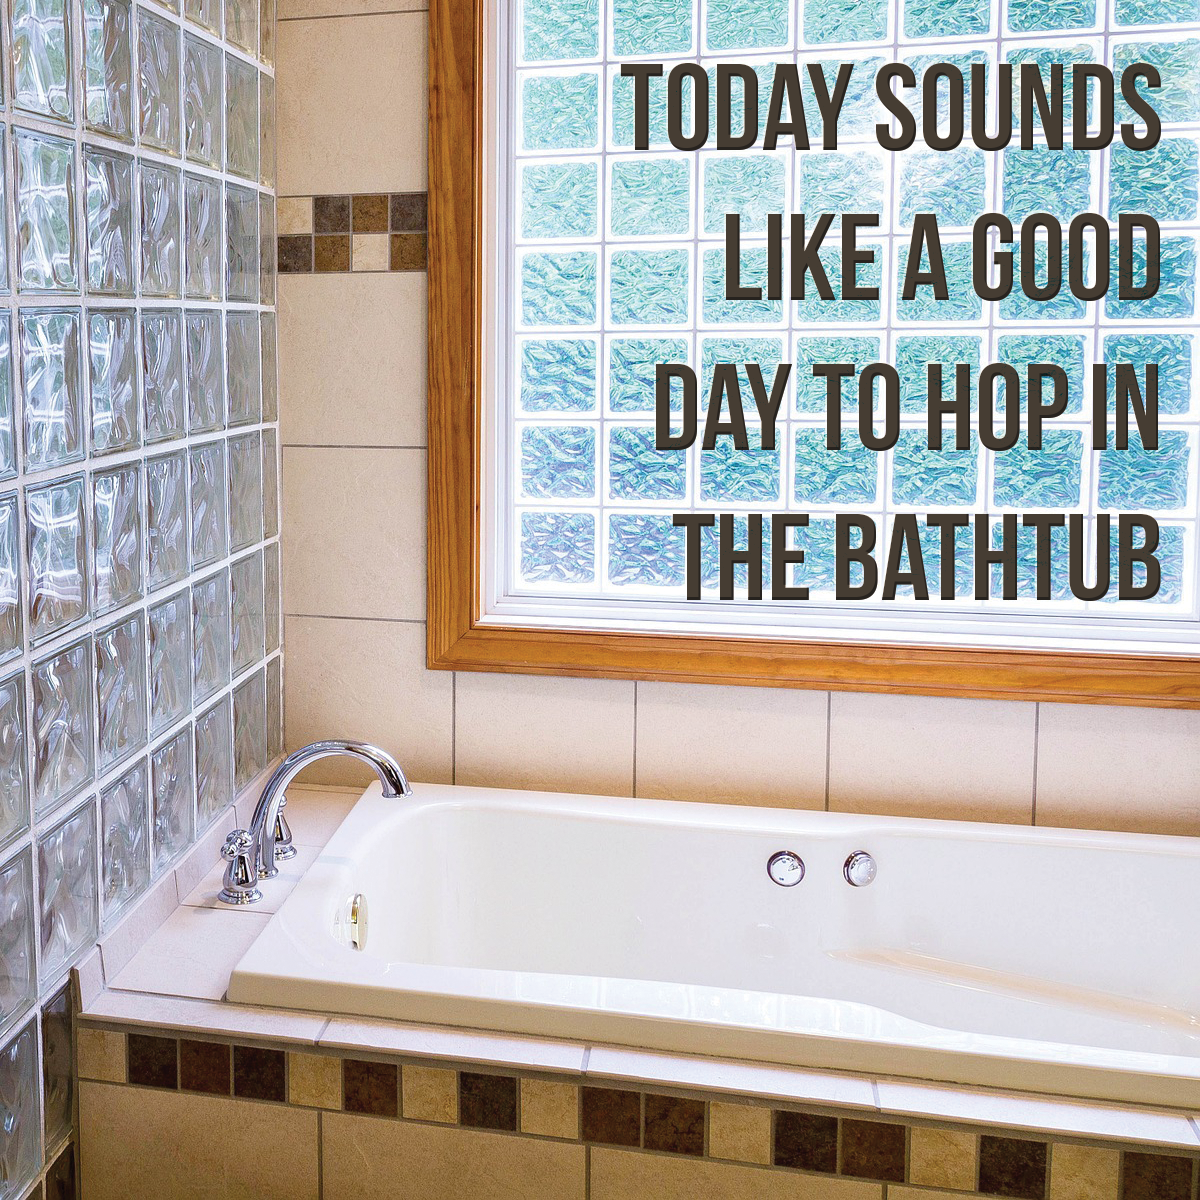 October 7th is Bathtub Day! Rest, Relax, Refresh, Renew ...